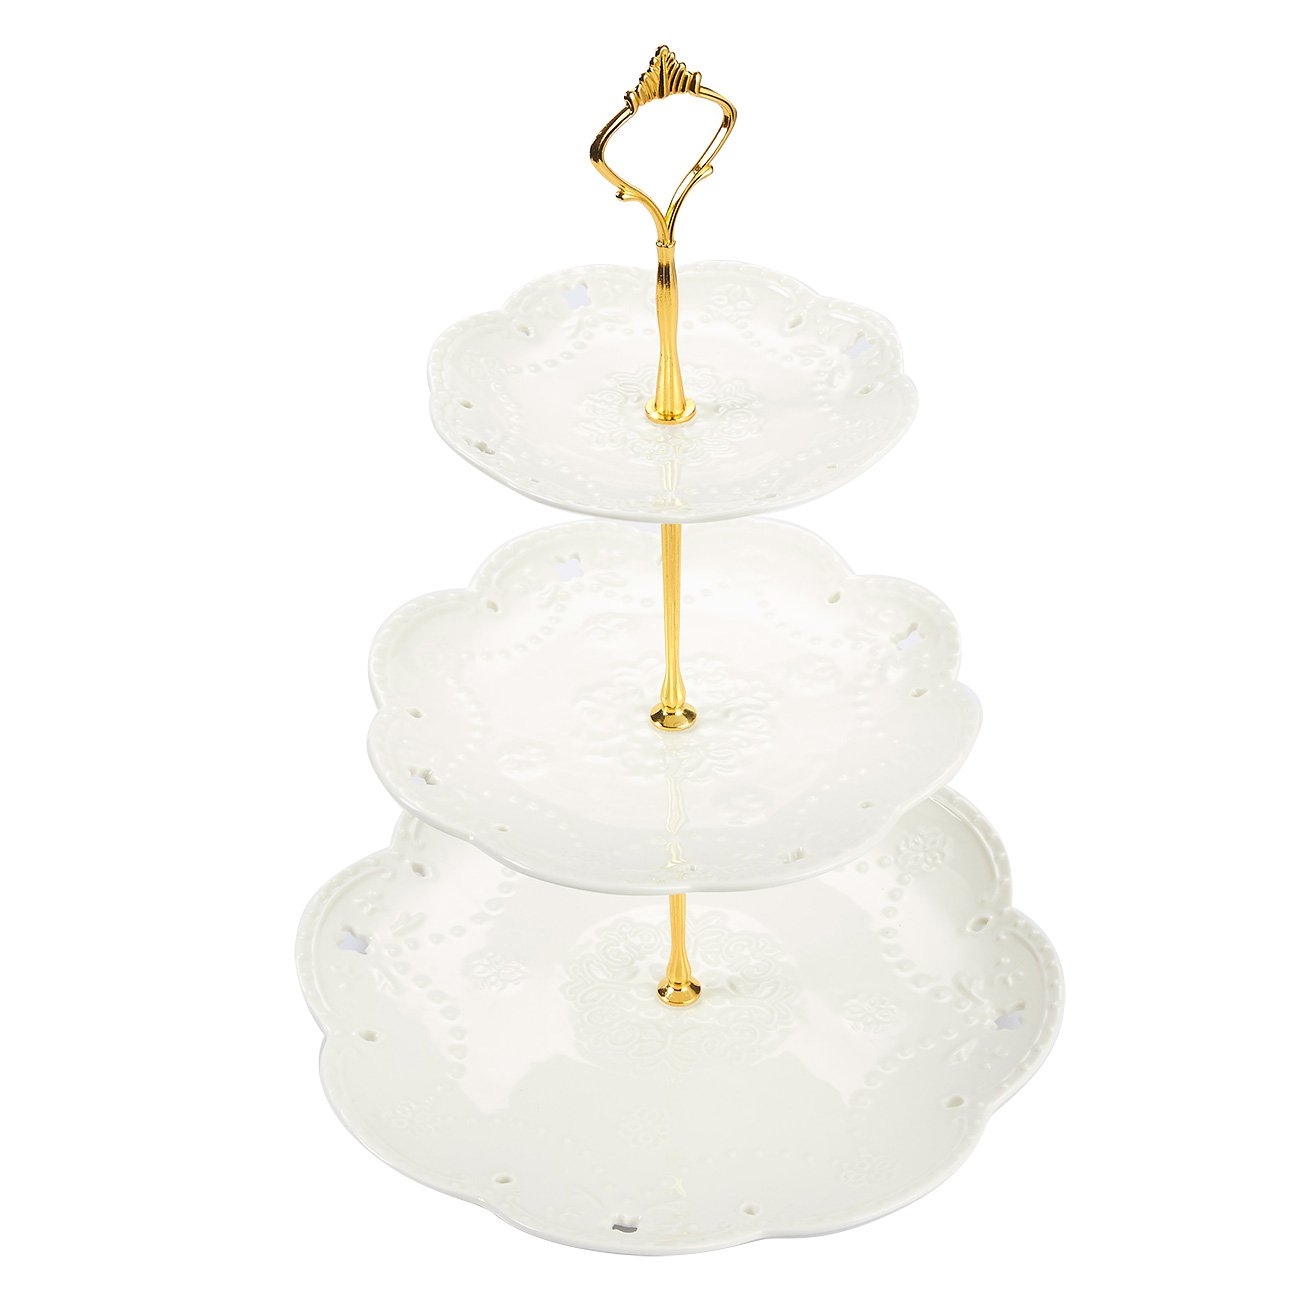 Juvale 3-Tier Ceramic Dessert Stand - Perfect Holding Cupcakes, Cakes, Fruit - Great Weddings, Birthdays, Parties, Baby Shower, Bridal Showers | White